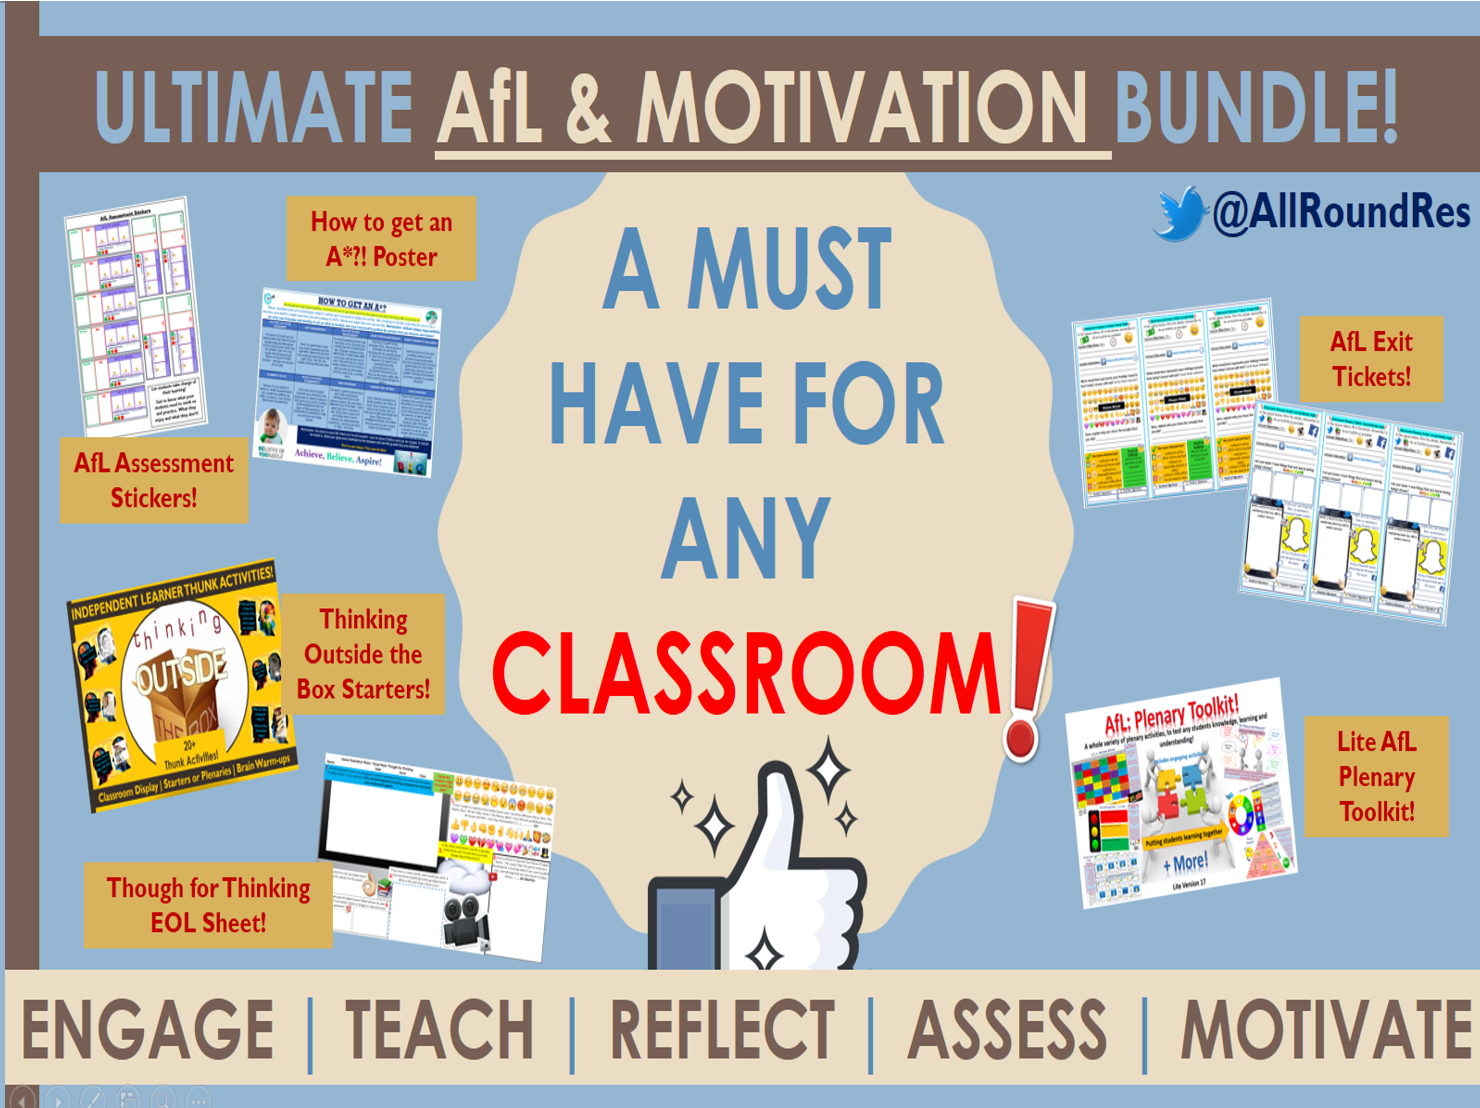 ULTIMATE CLASSROOM BUNDLE!